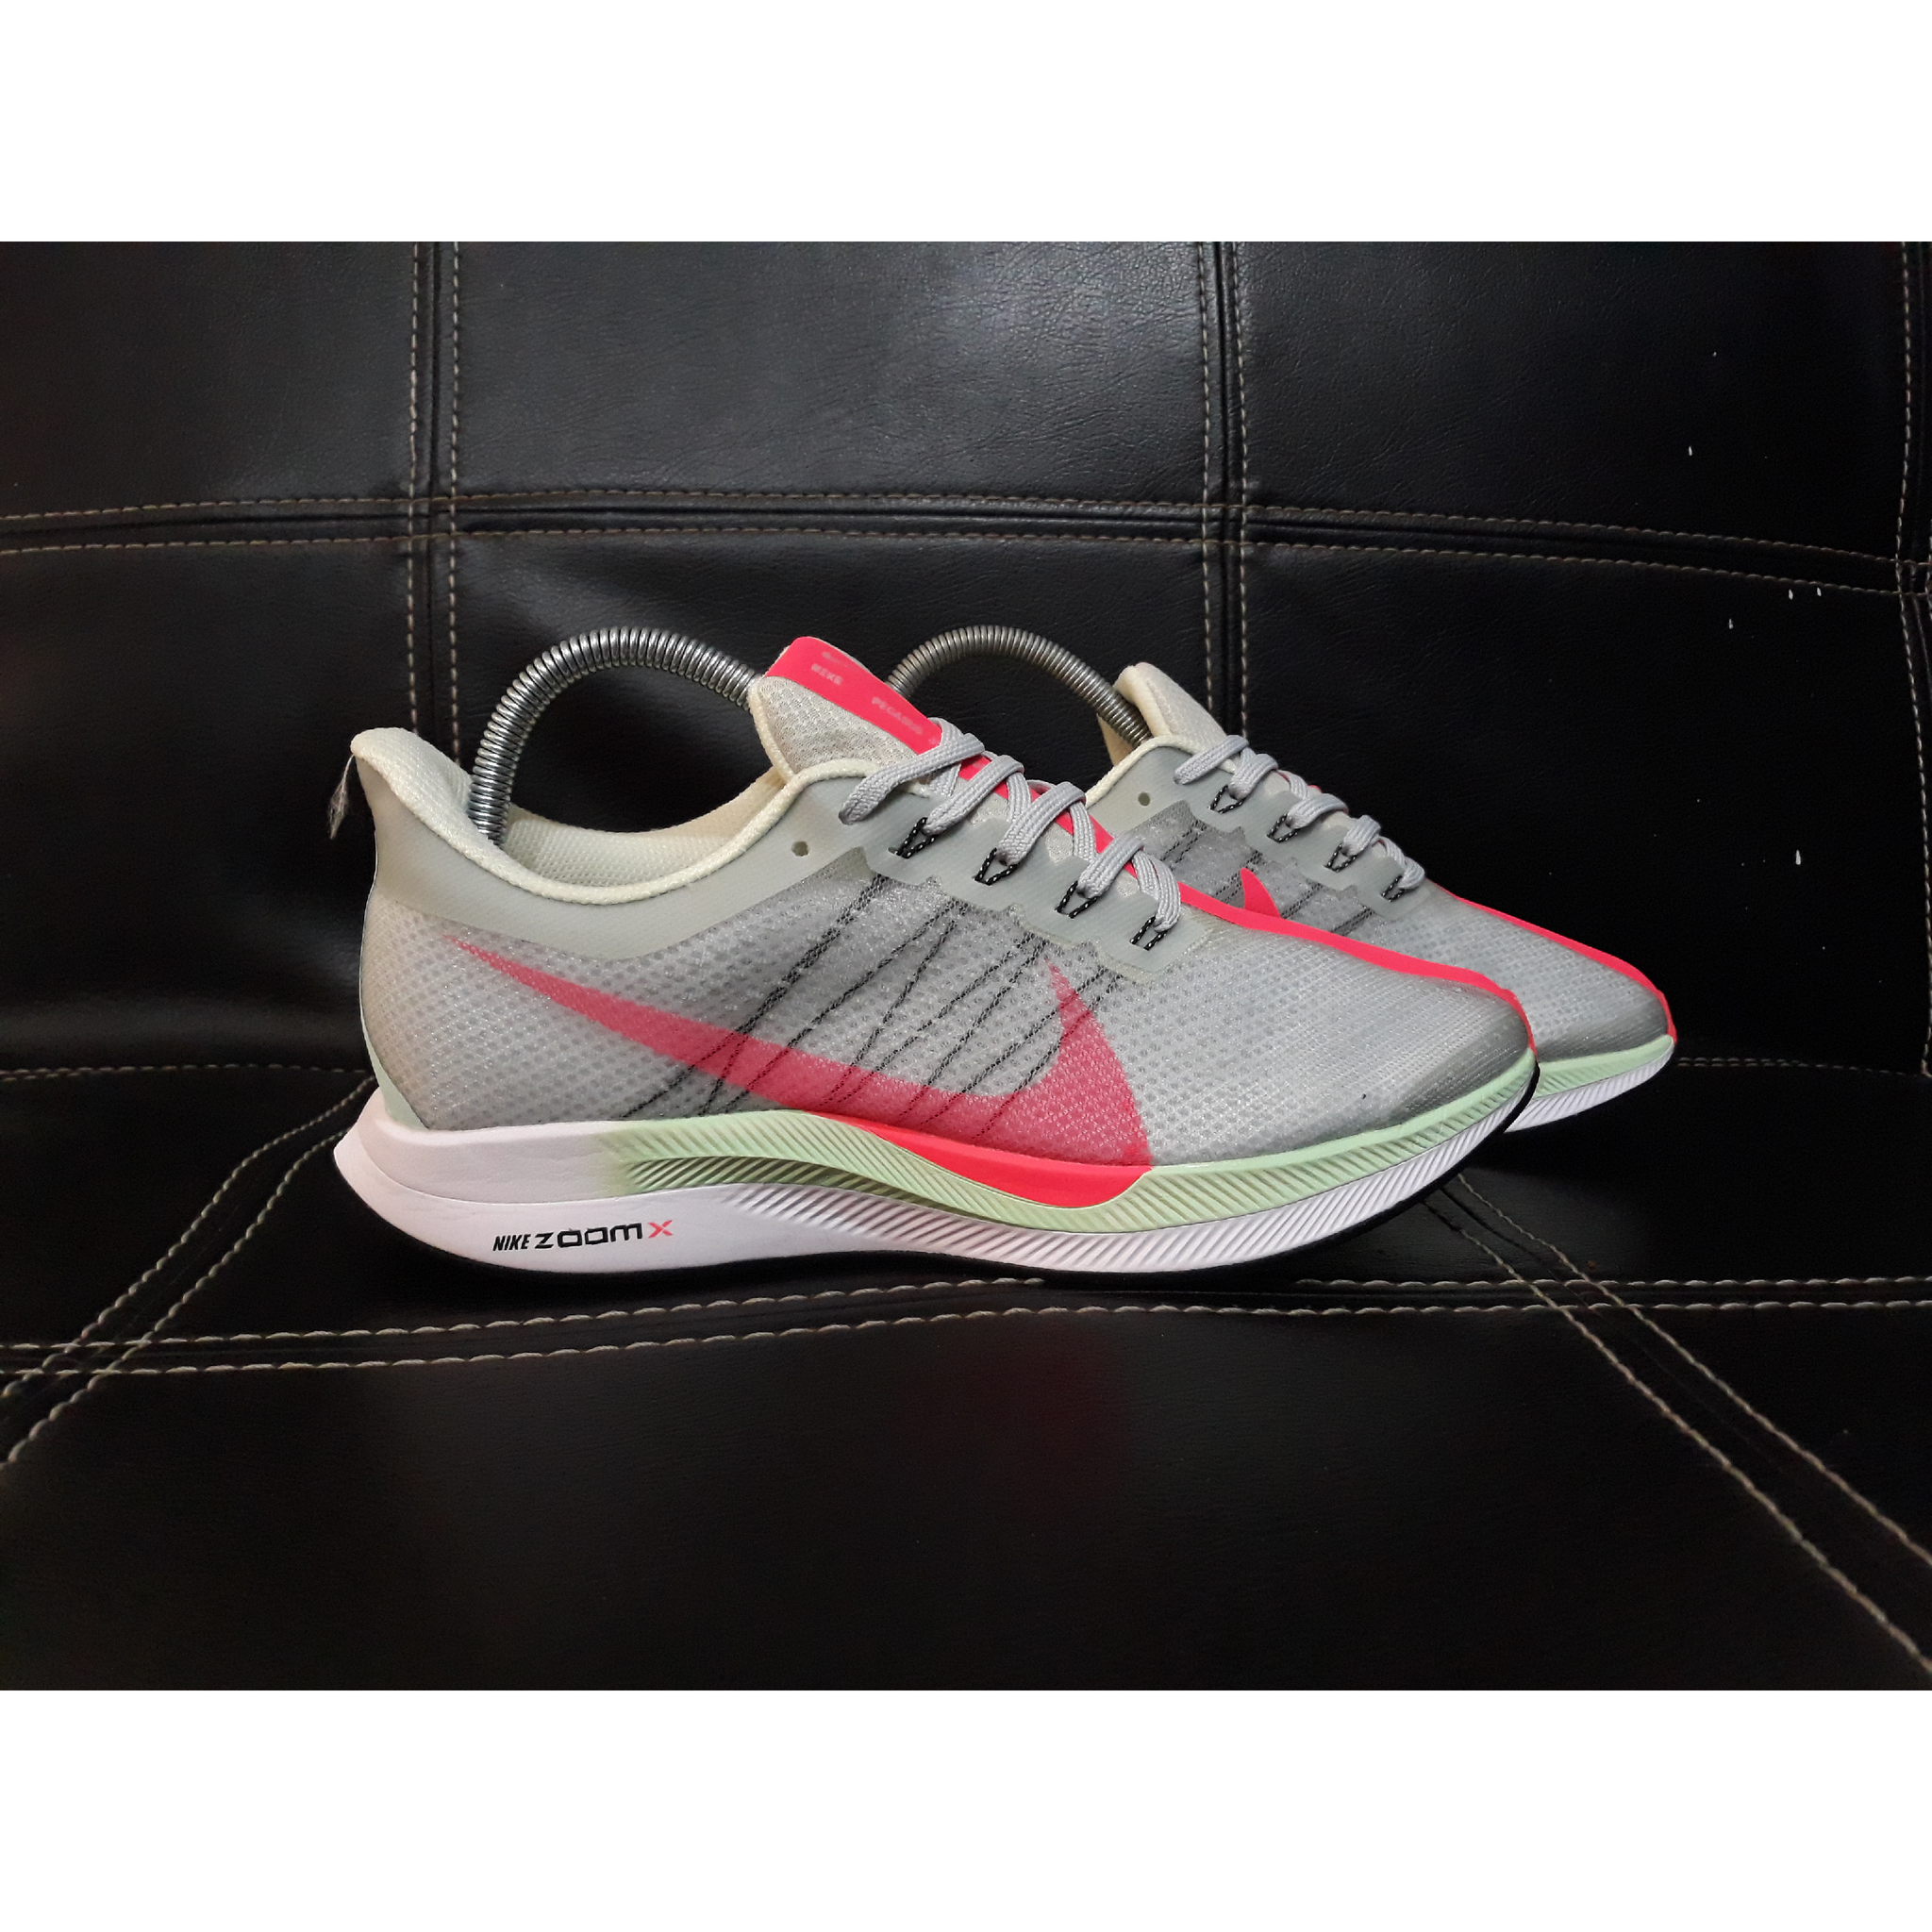 new styles 5d3e5 66710 Jual Nike Zoom Pegasus 35 Turbo Wolf Grey Hot Punch ...